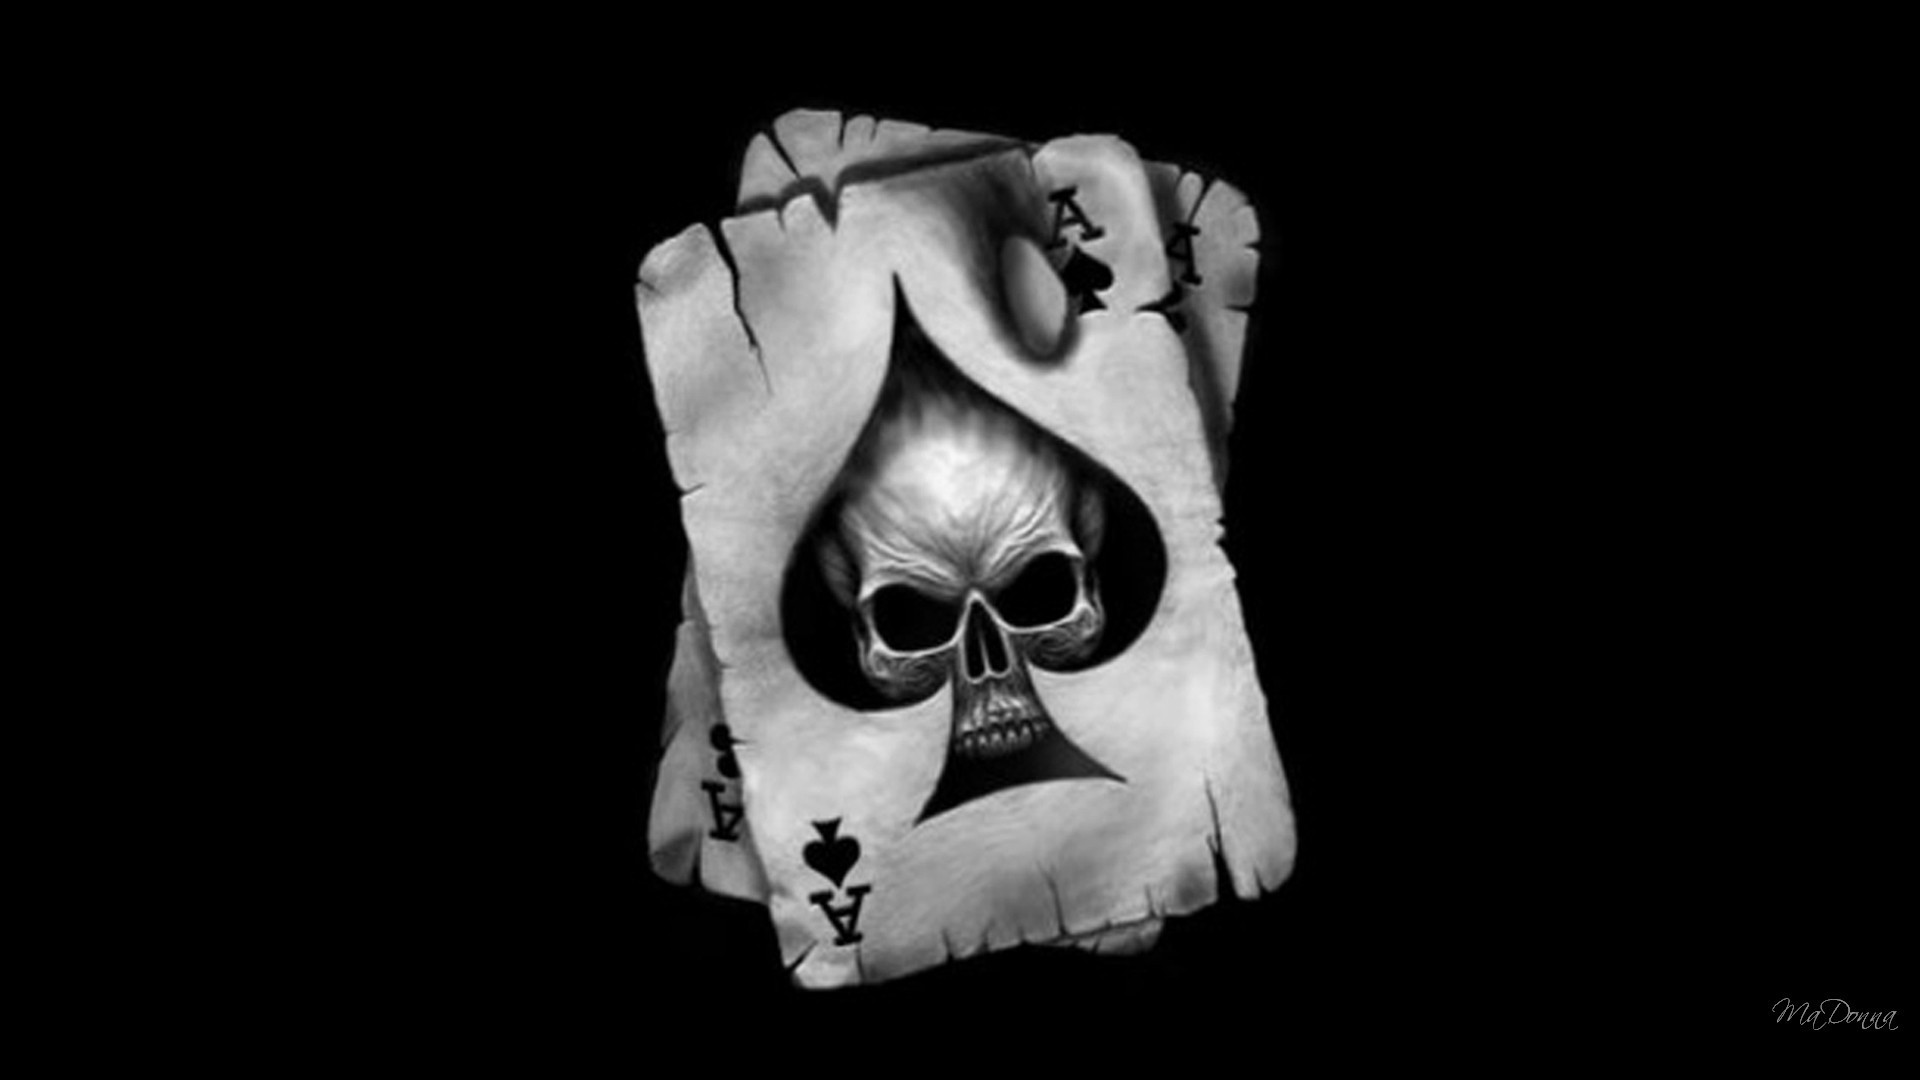 Motorhead Ace Of Spades wallpaper – 1372947